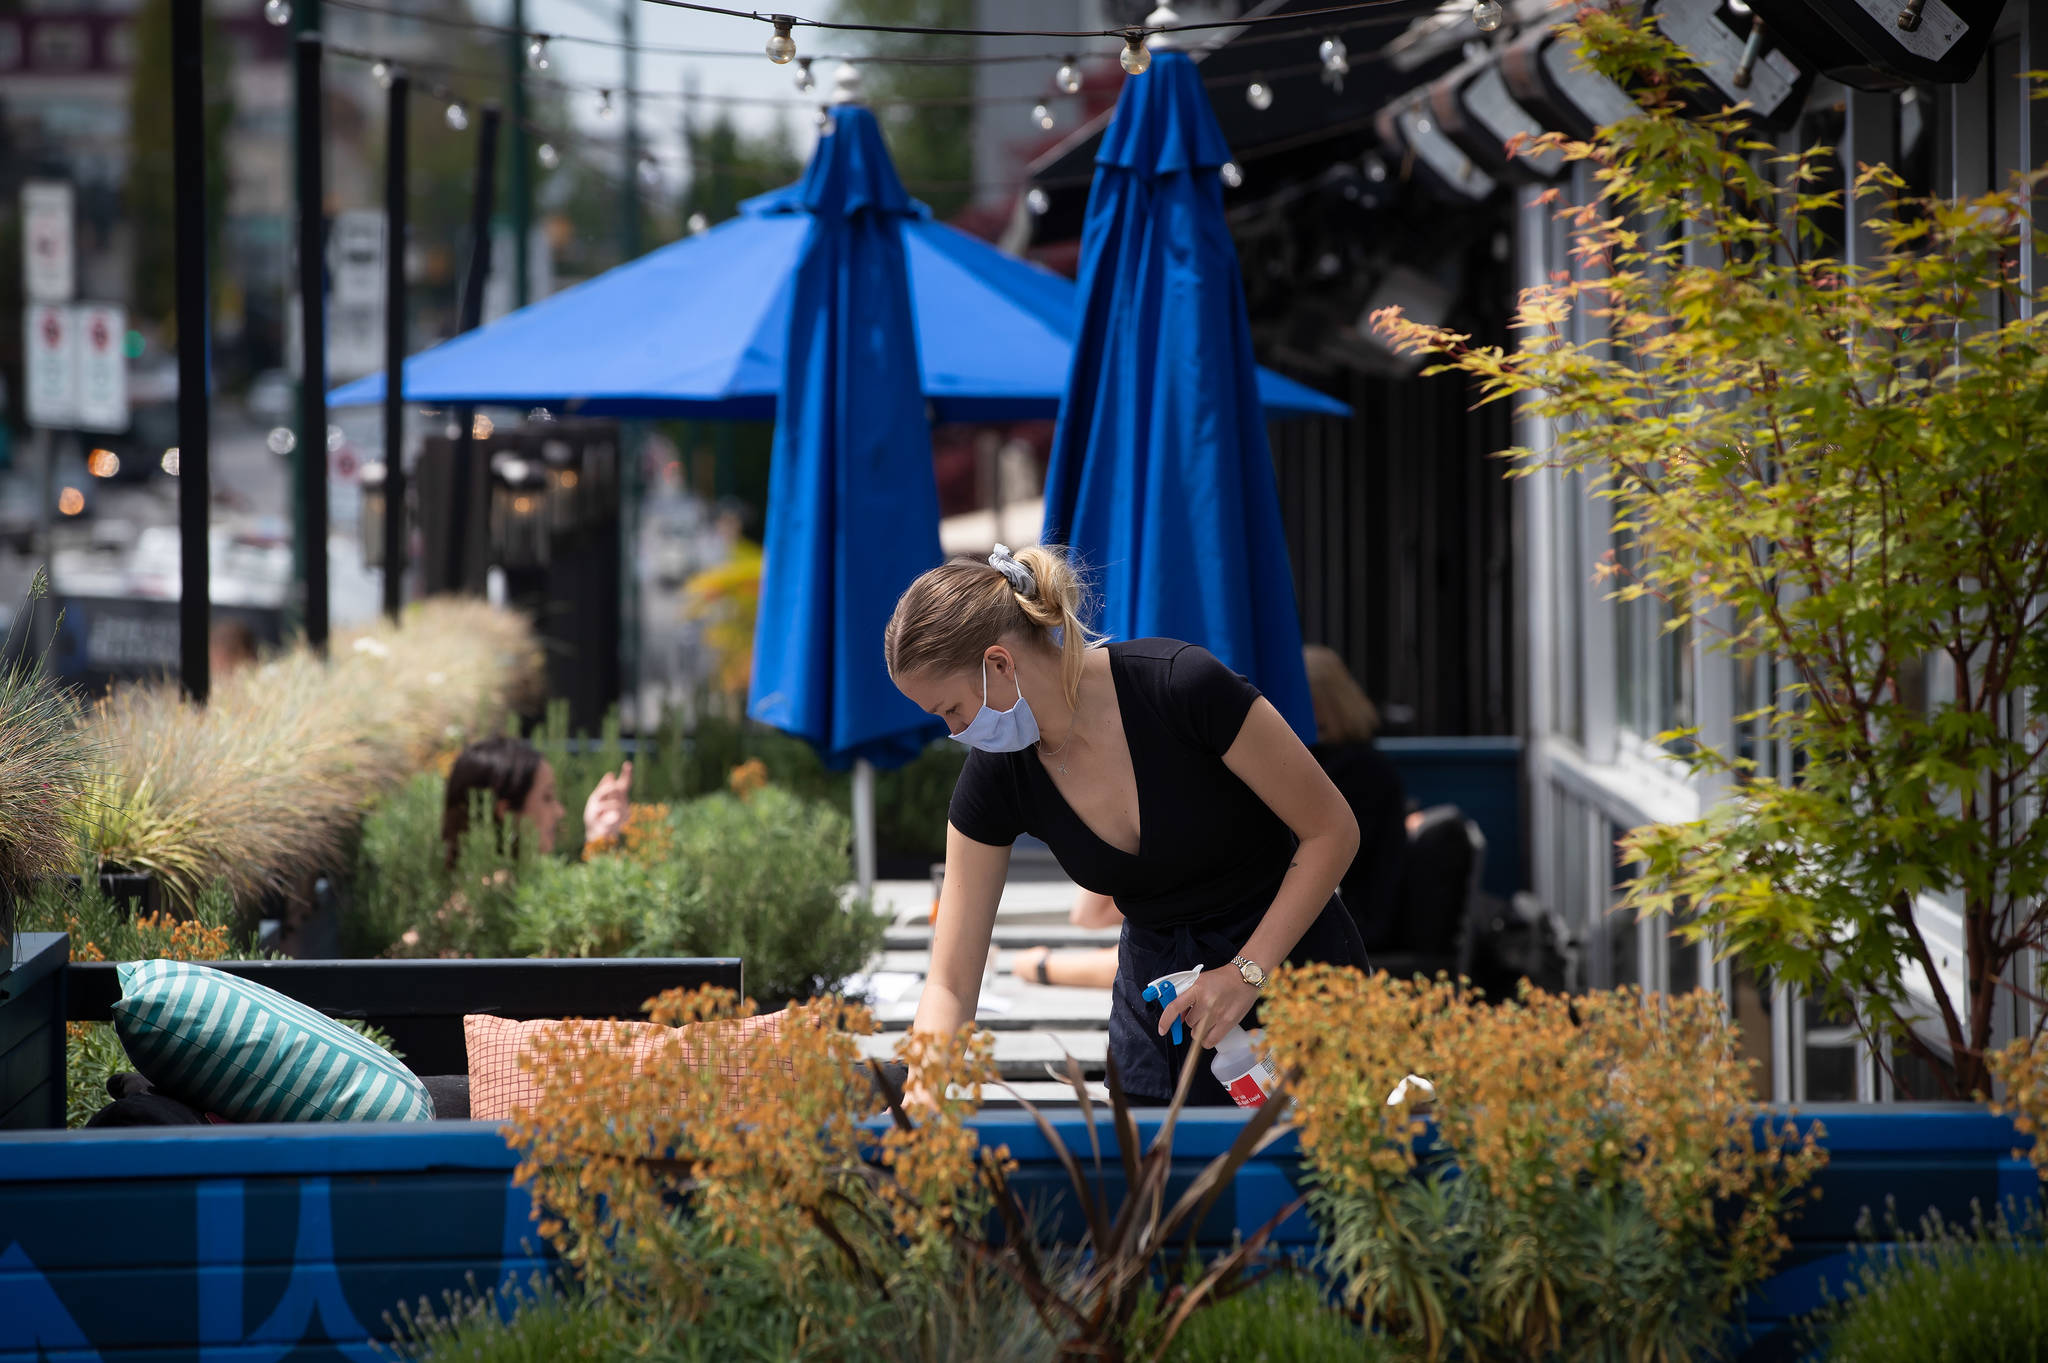 FILE – A server wears a face mask while cleaning a table on the patio at an Earls restaurant, in Vancouver, on Tuesday, May 19, 2020. THE CANADIAN PRESS/Darryl Dyck